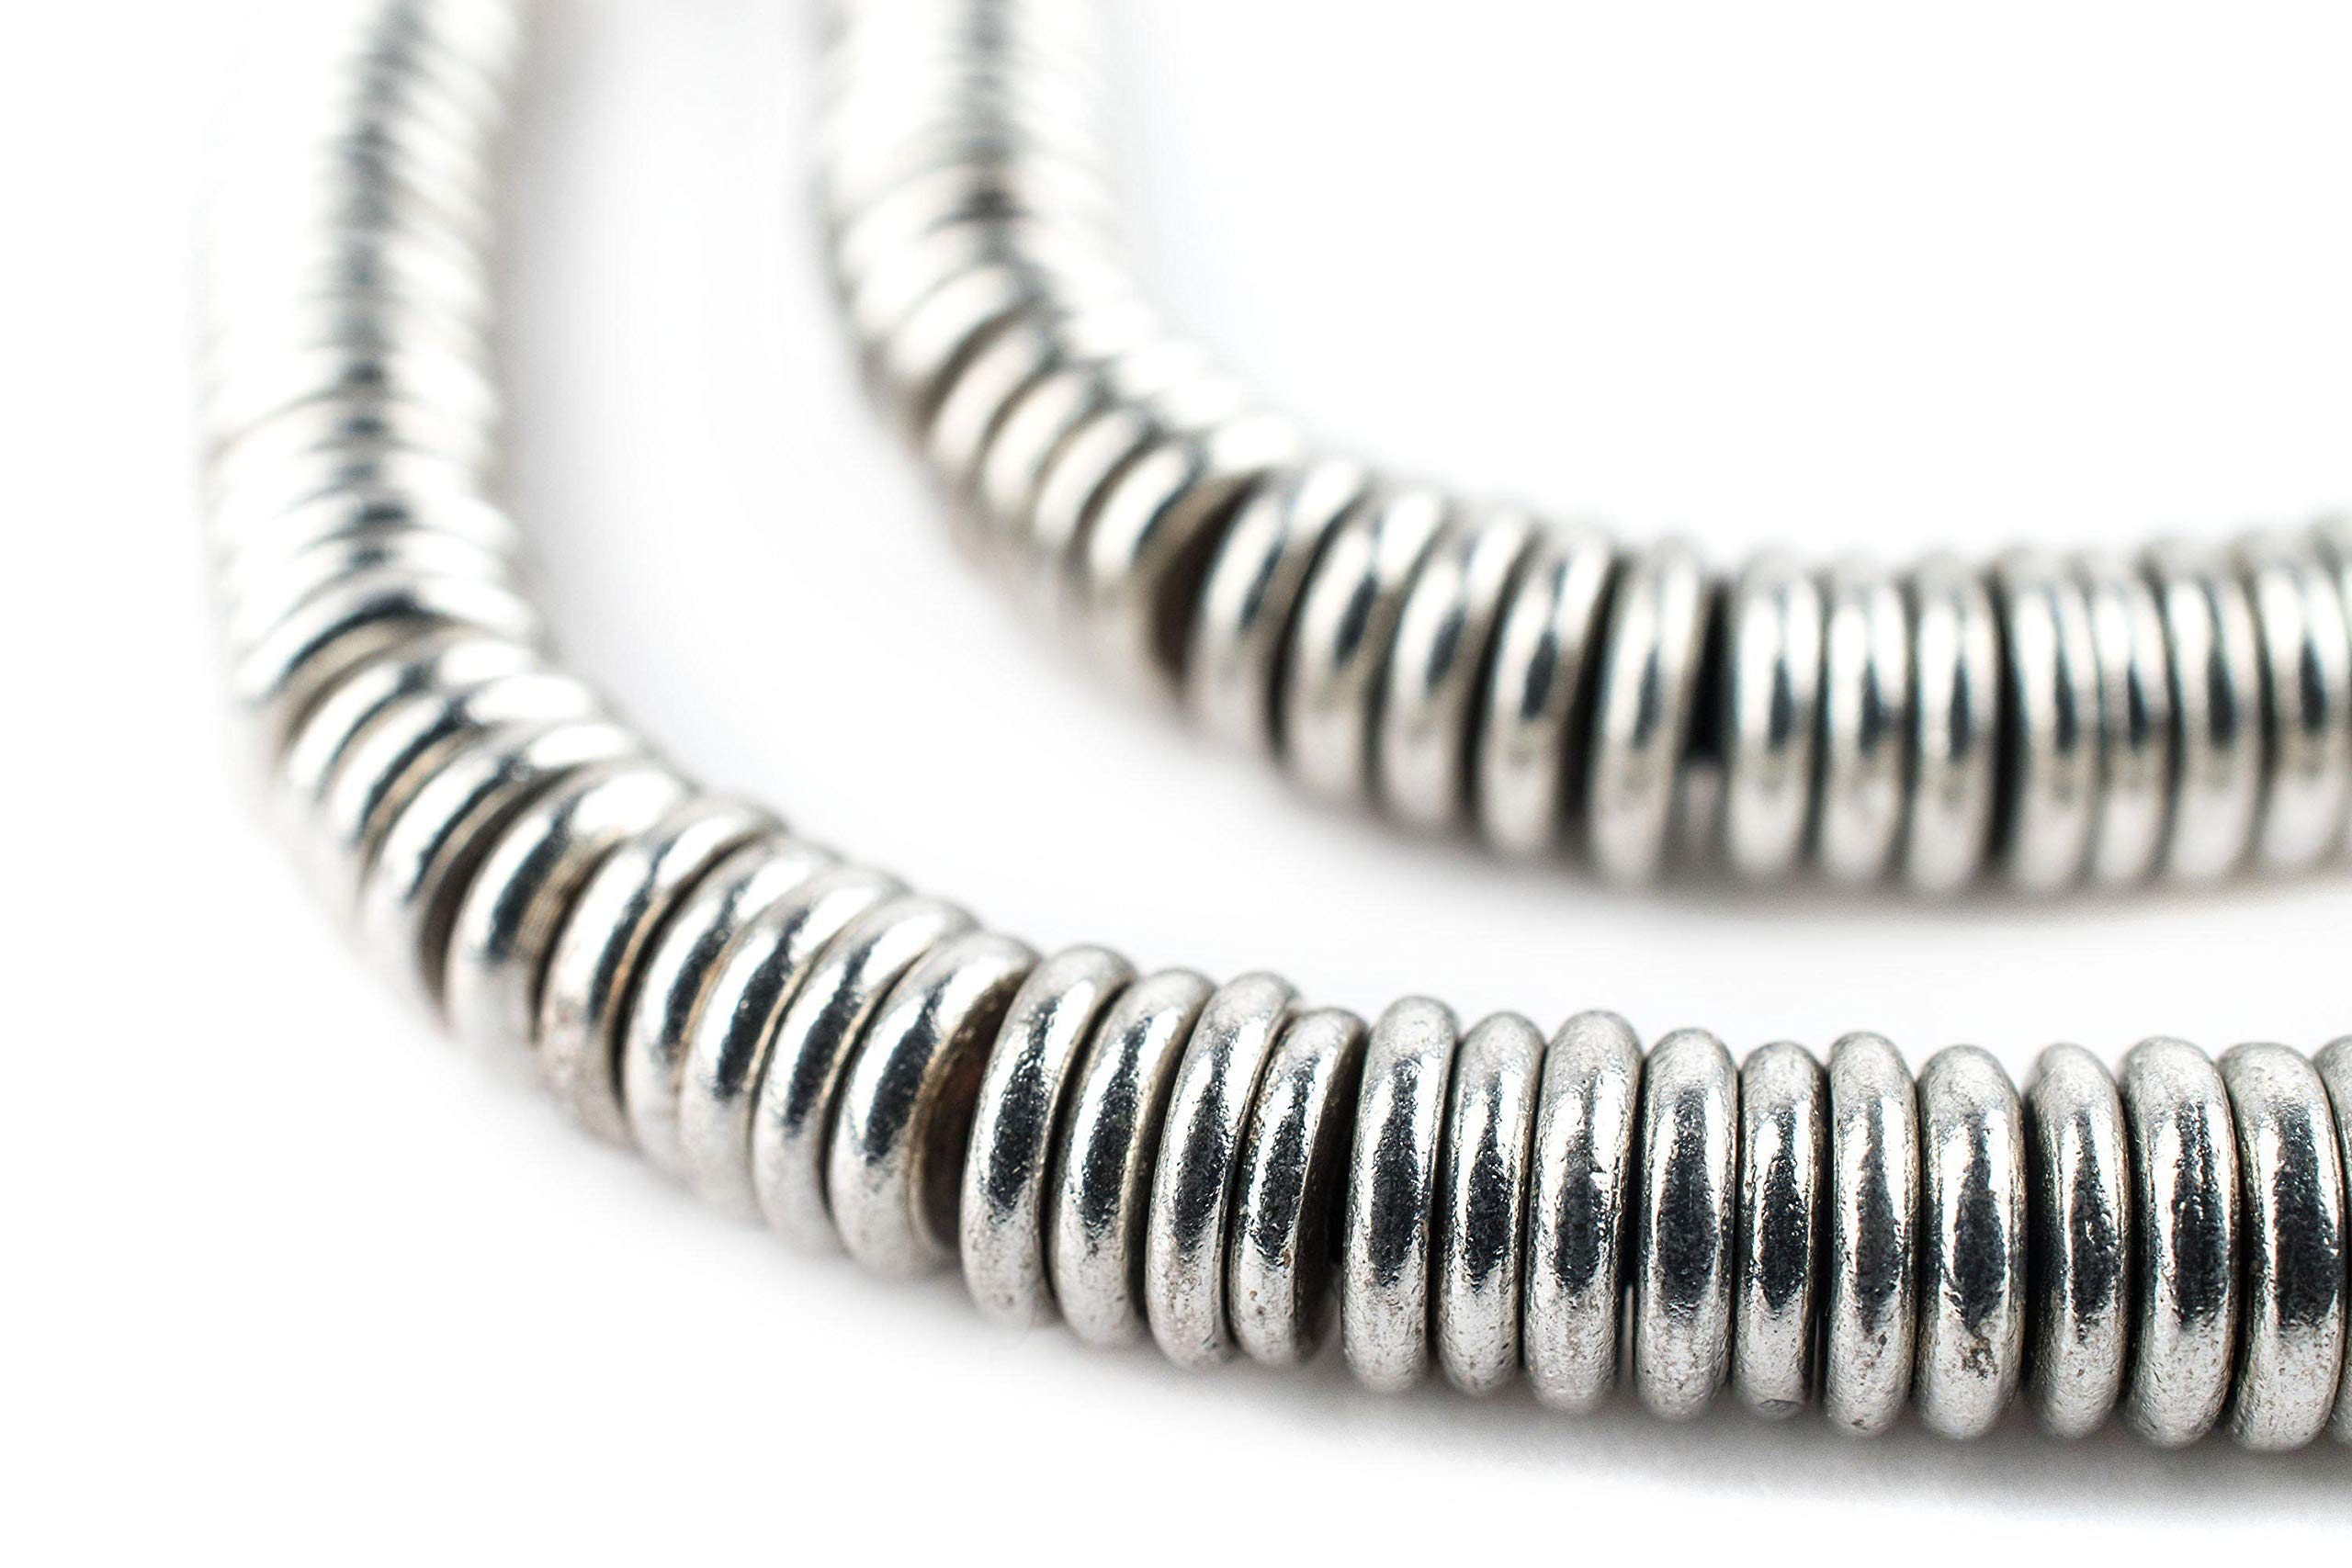 TheBeadChest Smooth Silver Heishi Beads 6mm White Metal Large Hole 16 Inch Strand